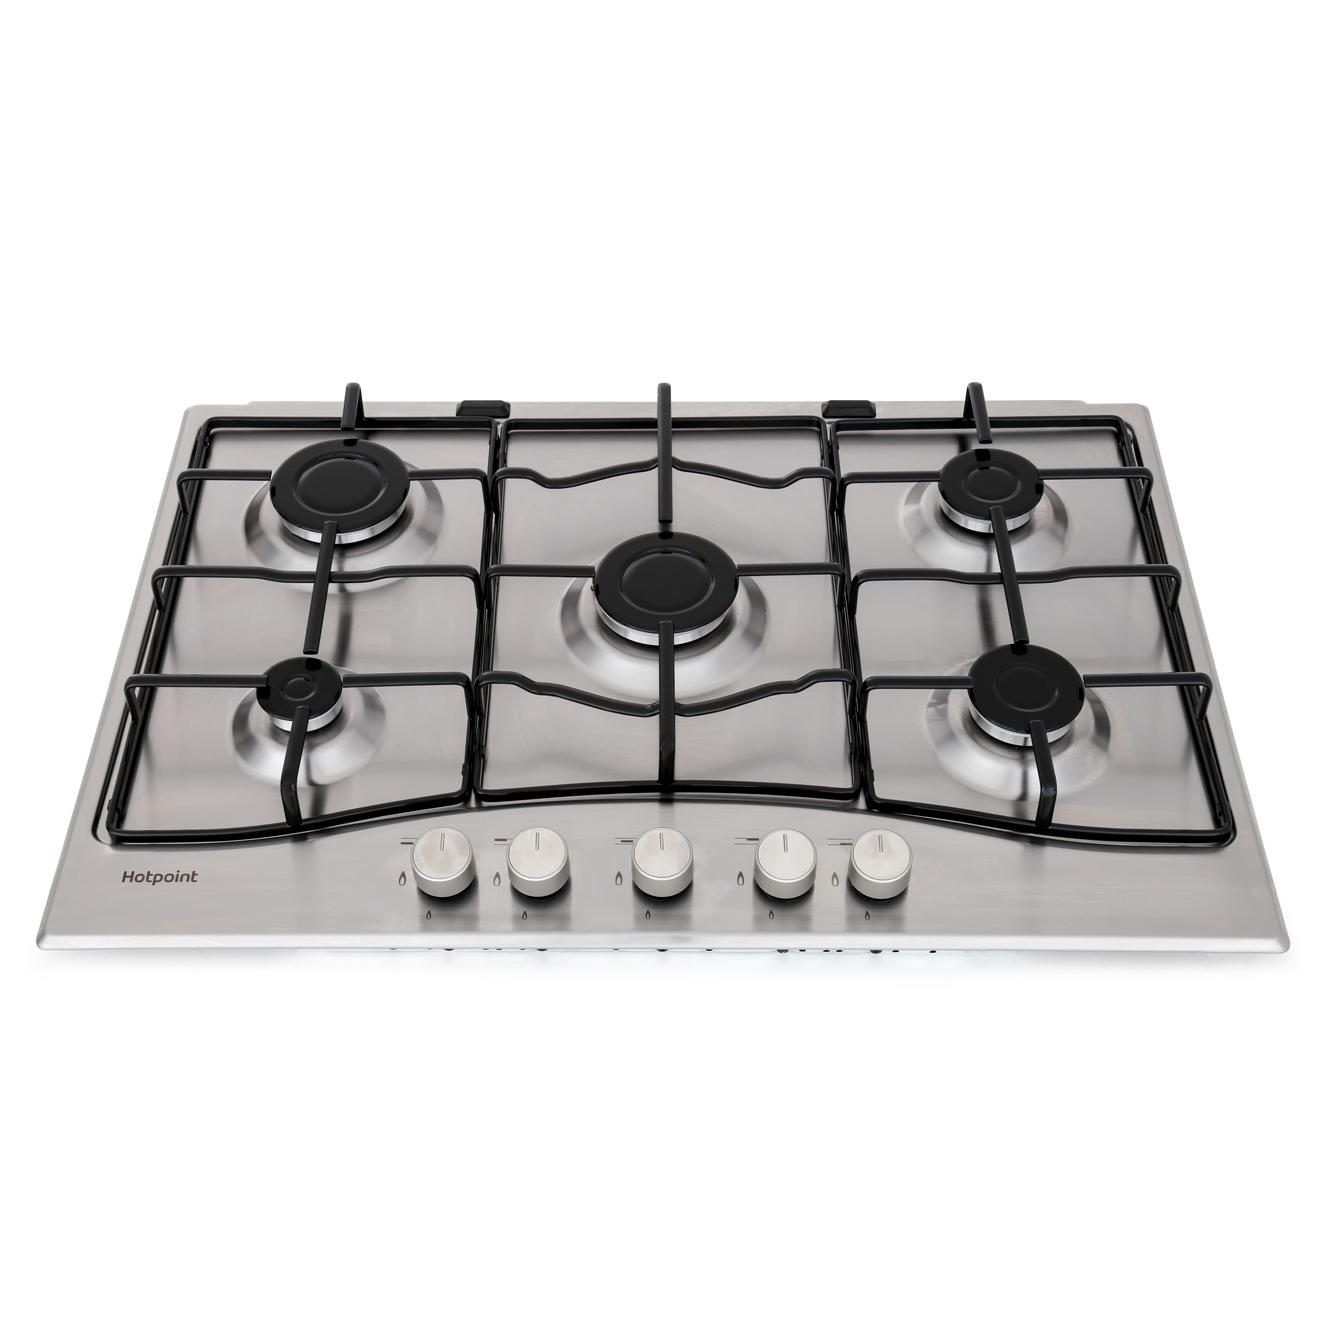 hotpoint pcn752uixh 5 burner gas hob 730mm stainless steel. Black Bedroom Furniture Sets. Home Design Ideas